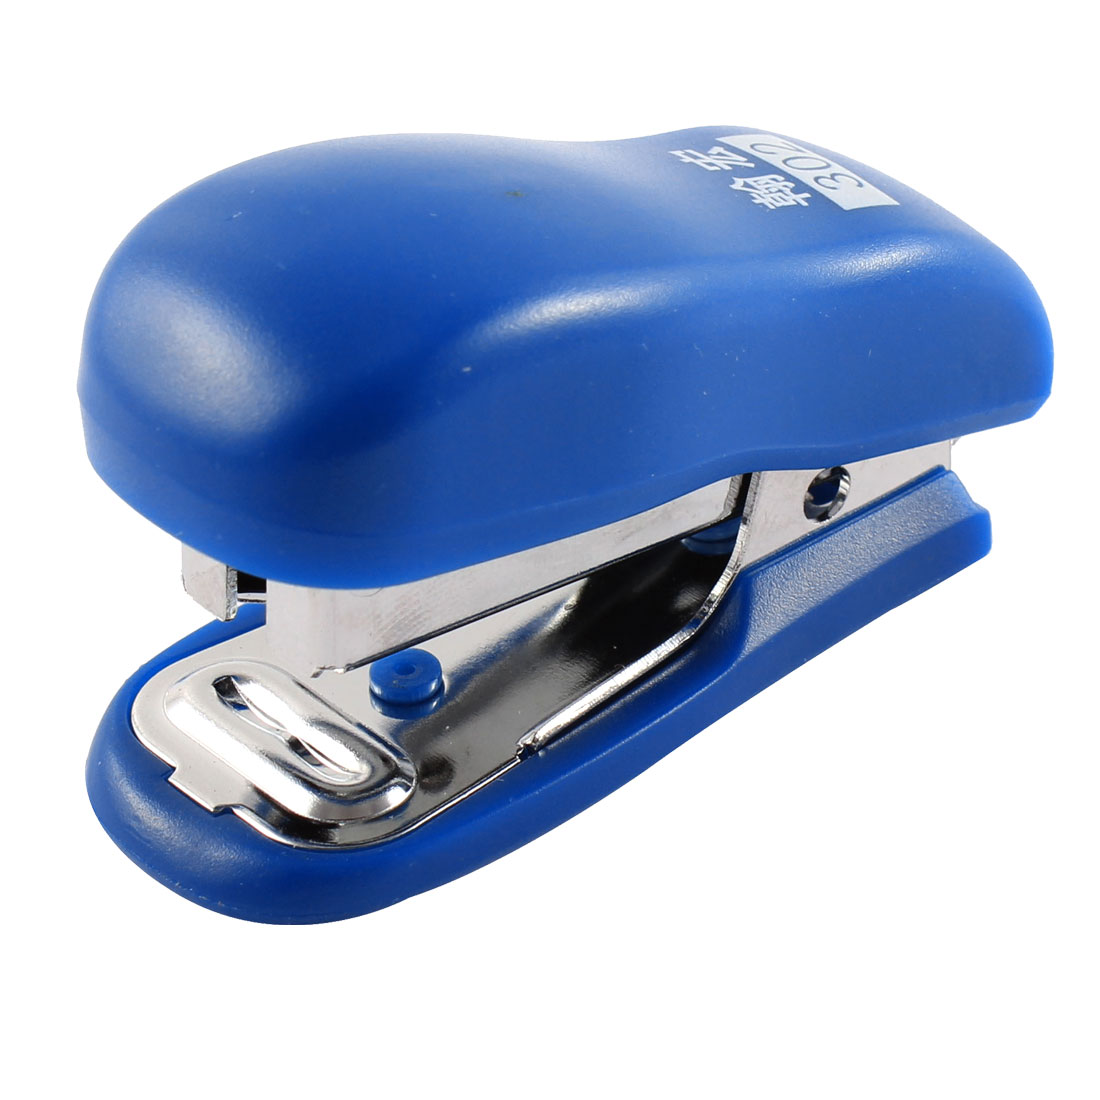 Office Woker School Study Papers Plastic Shell Stapling Mini Stapler Blue